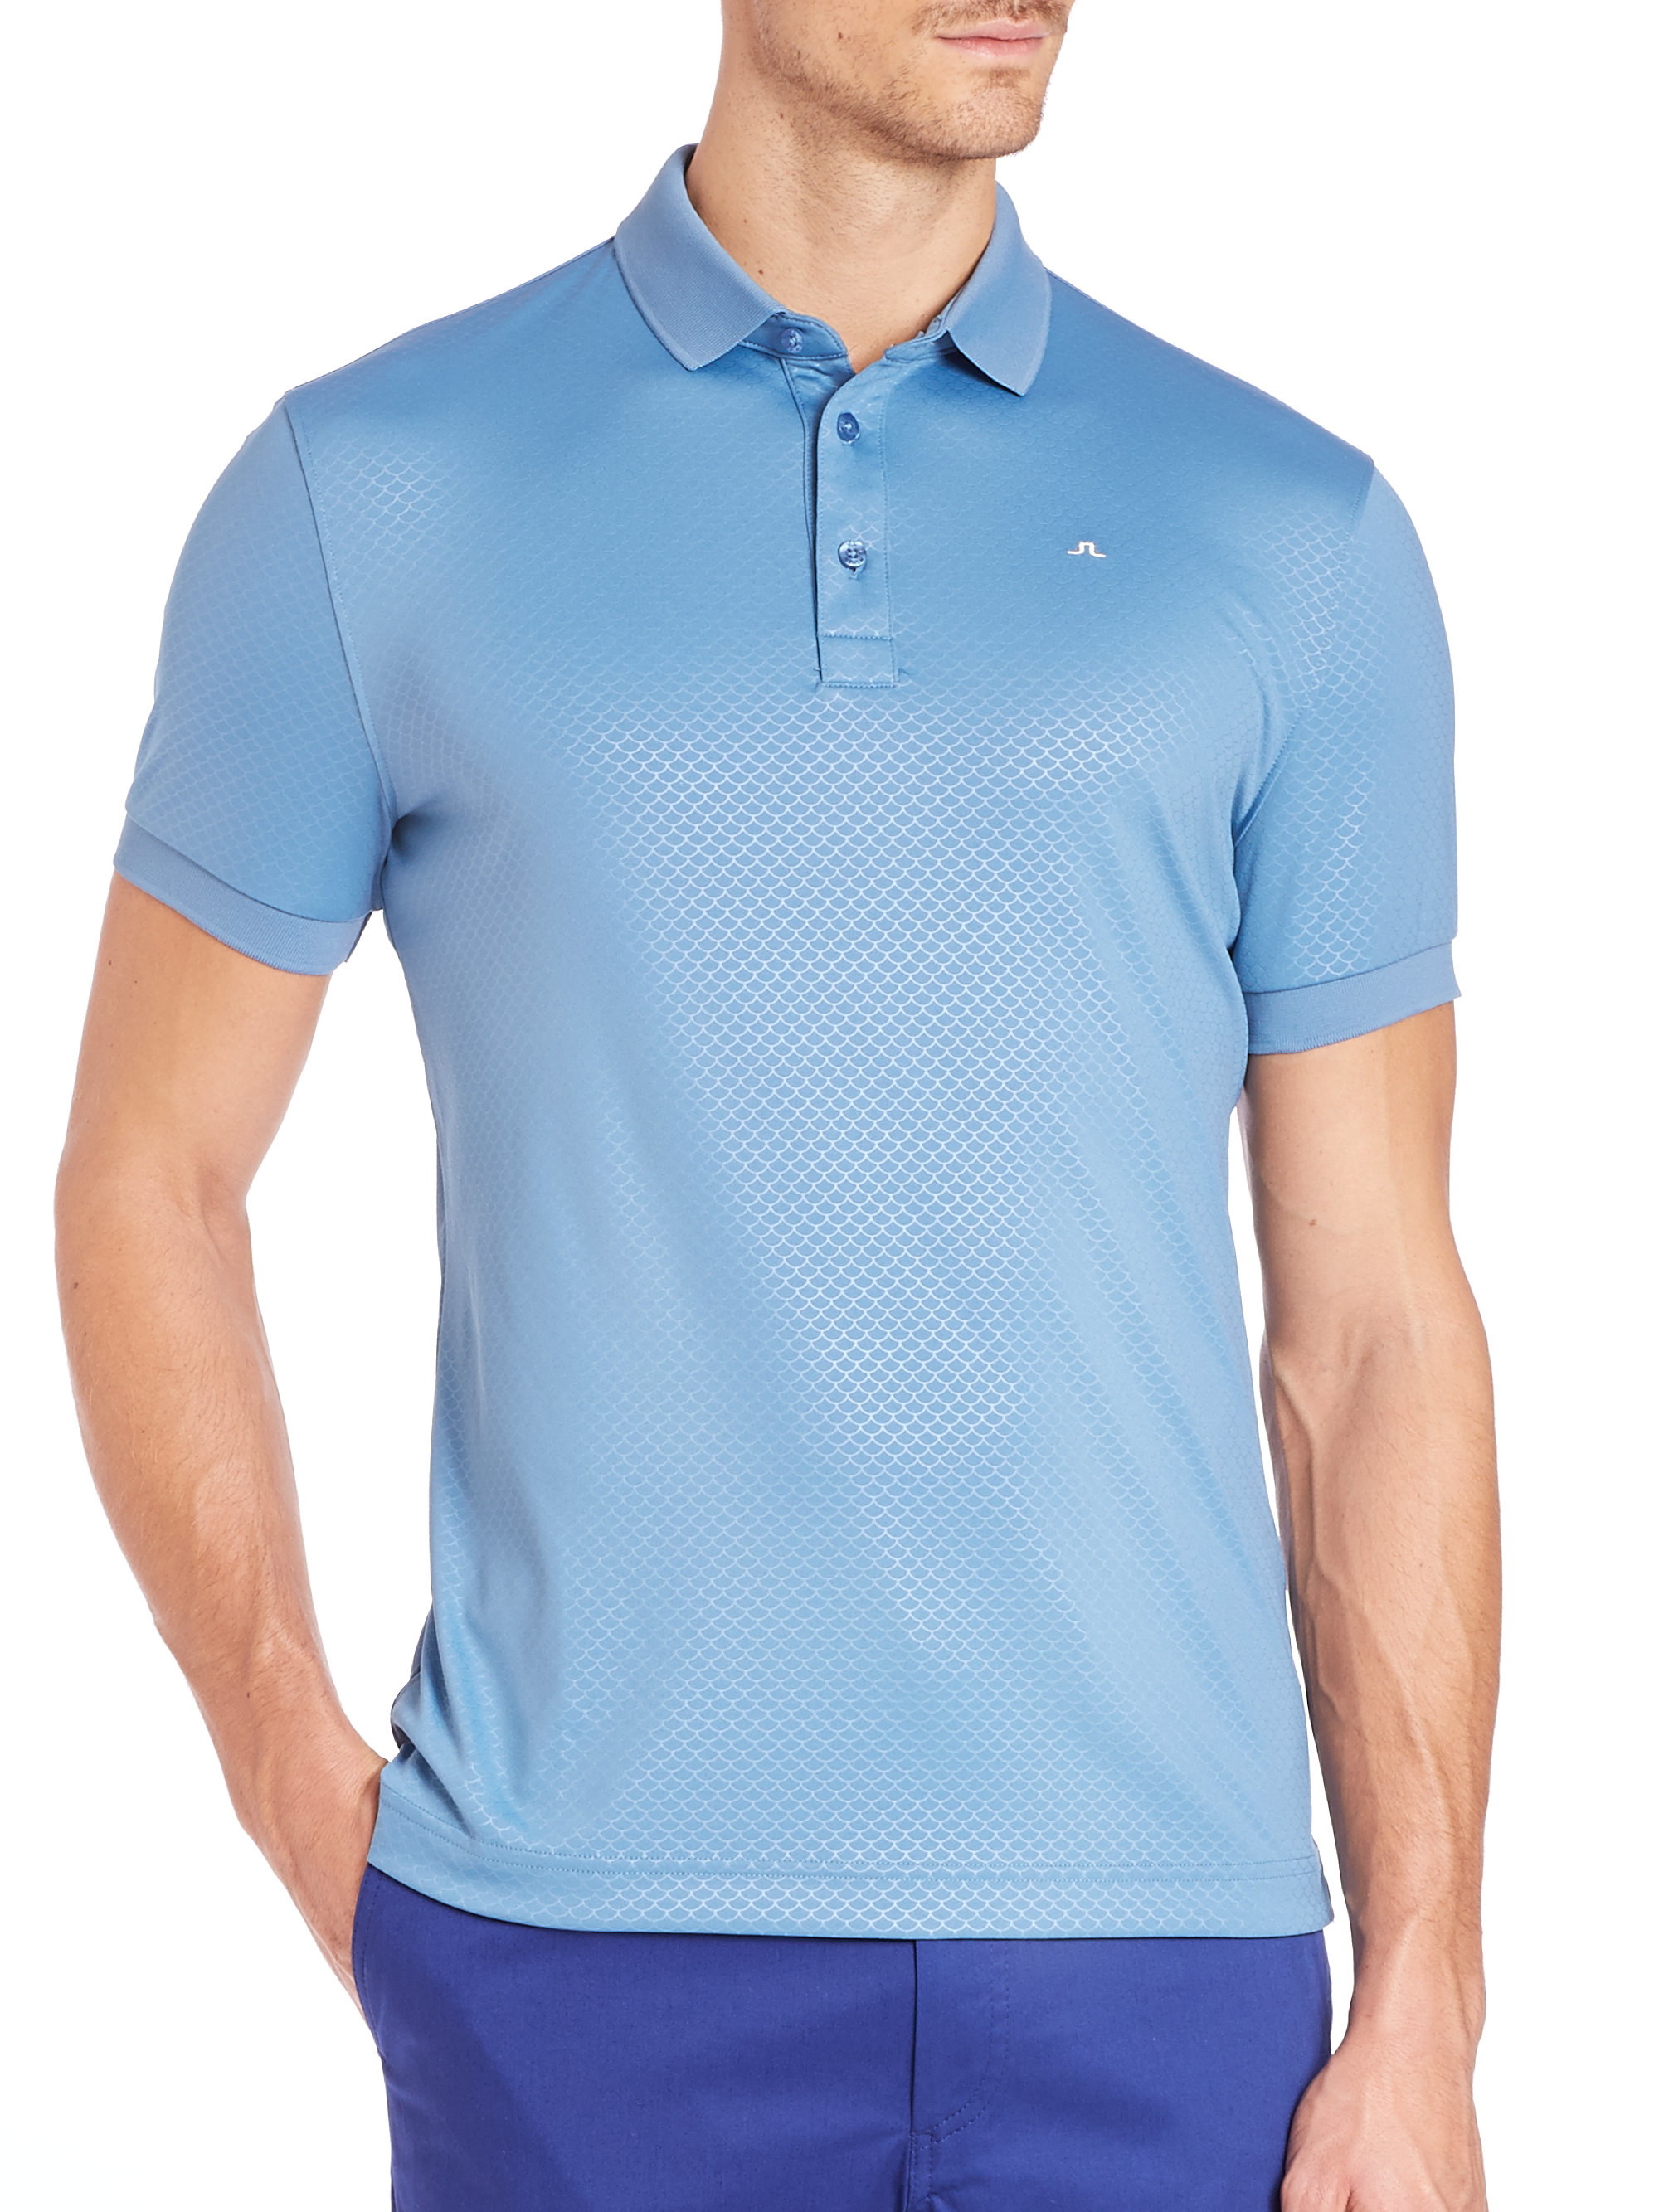 57c008b1 J.Lindeberg Slim Tx Jersey Polo Shirt in Blue for Men - Lyst